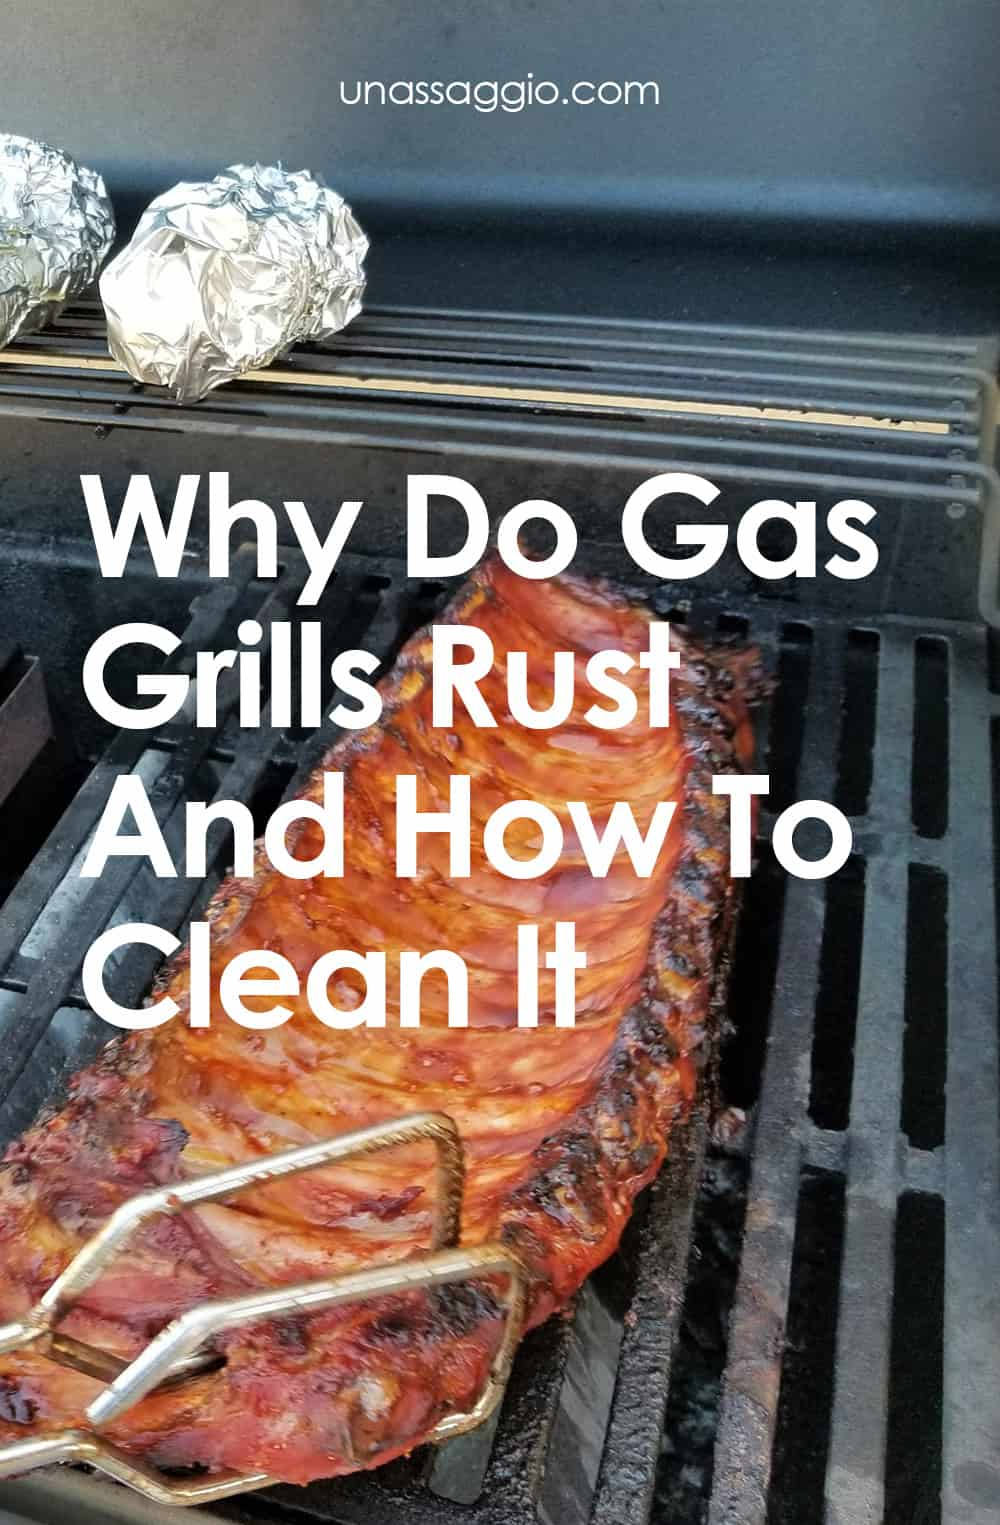 Why Do Gas Grills Rust And How To Clean It